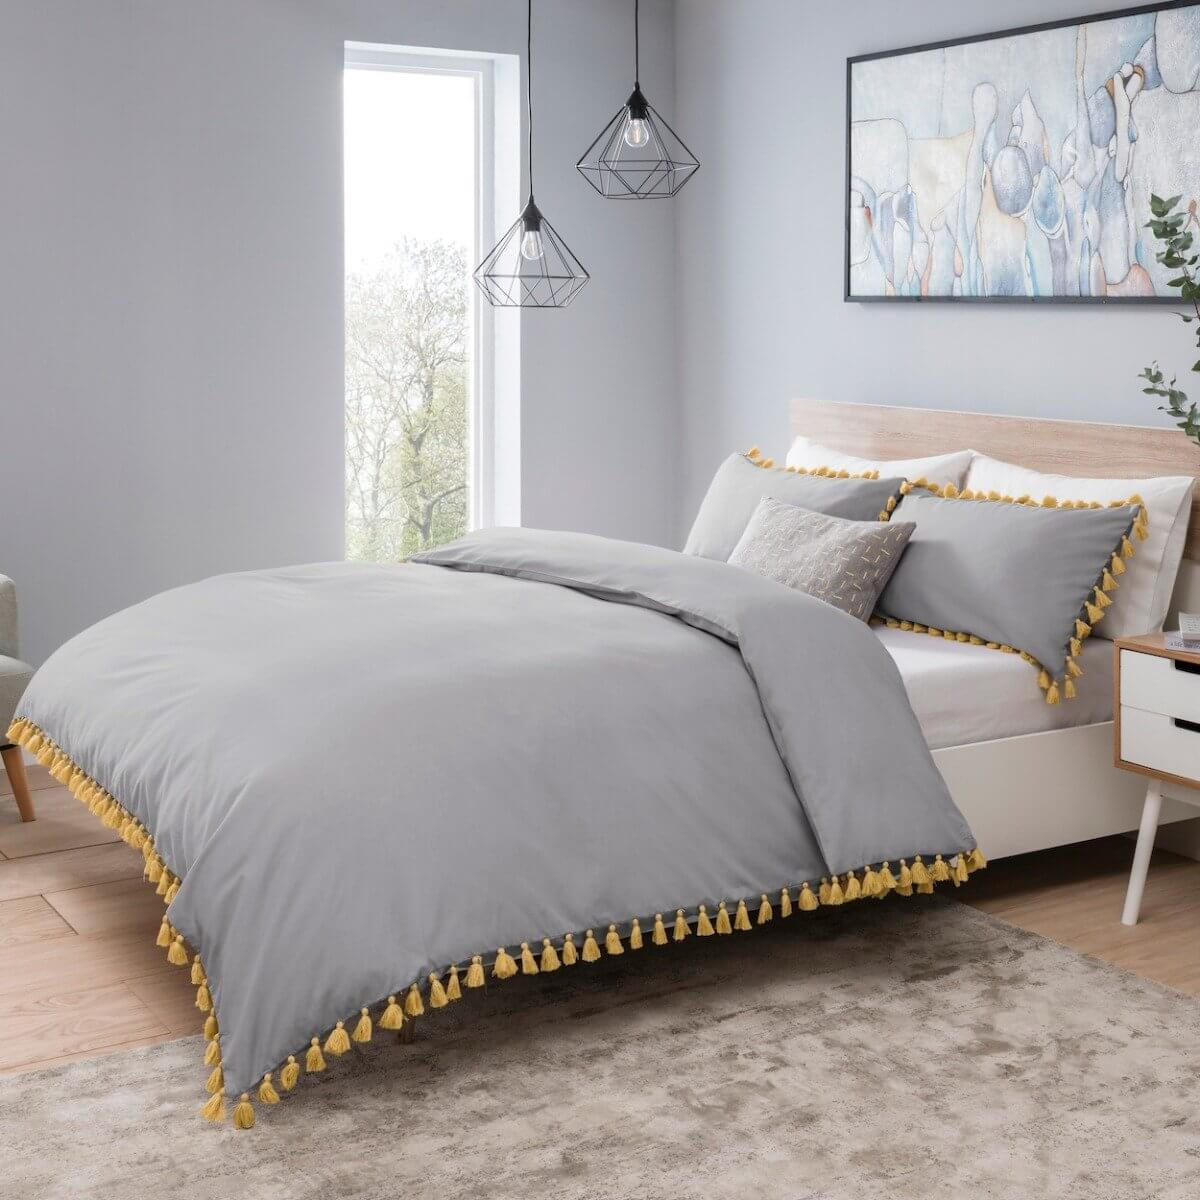 Tassels Grey With Mustard Bedding - Reversible Duvet Cover and Pillowcase Set